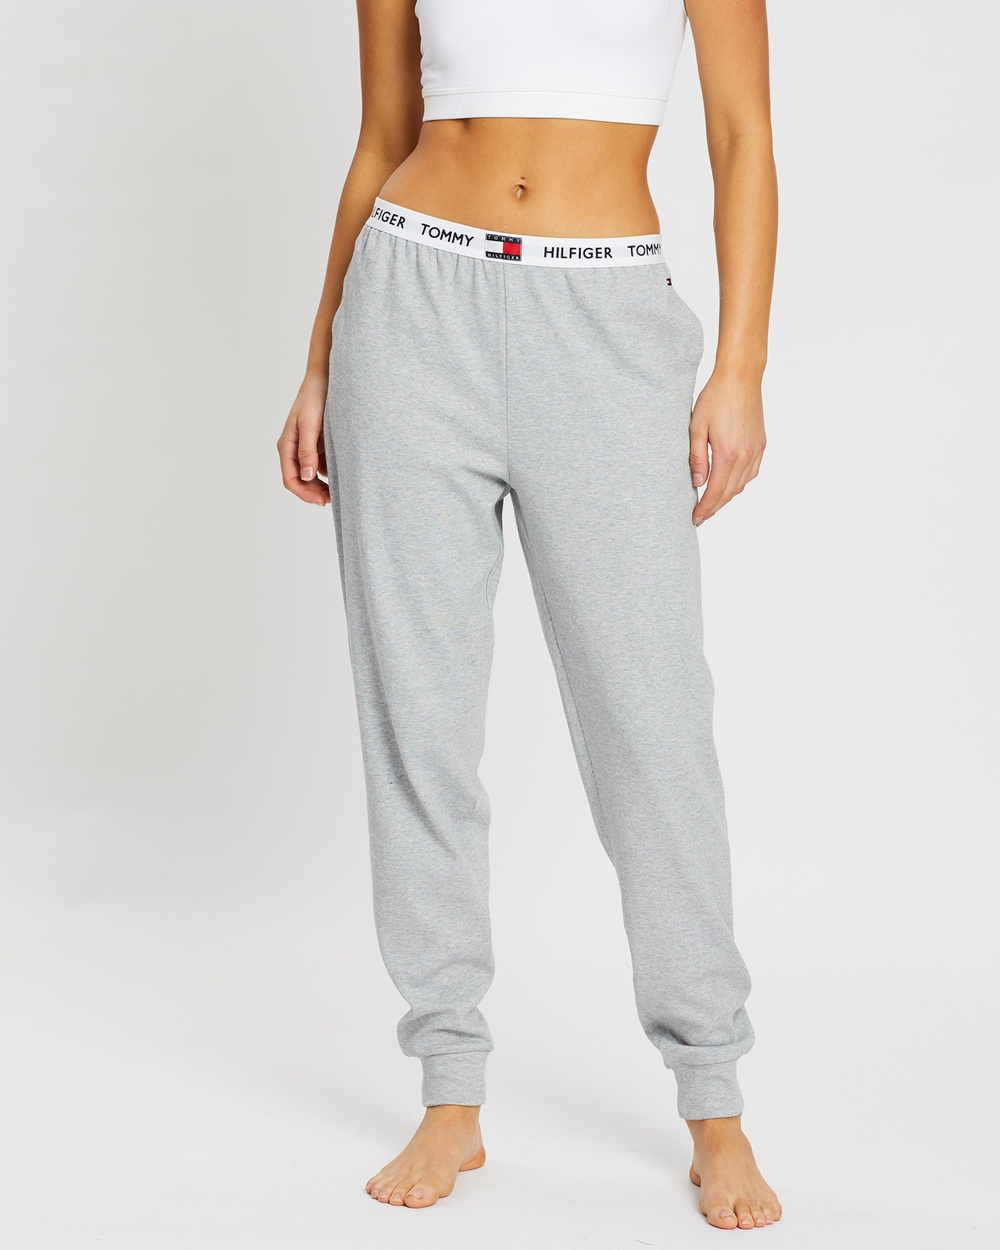 Tommy 85 Pants - Sleepwear